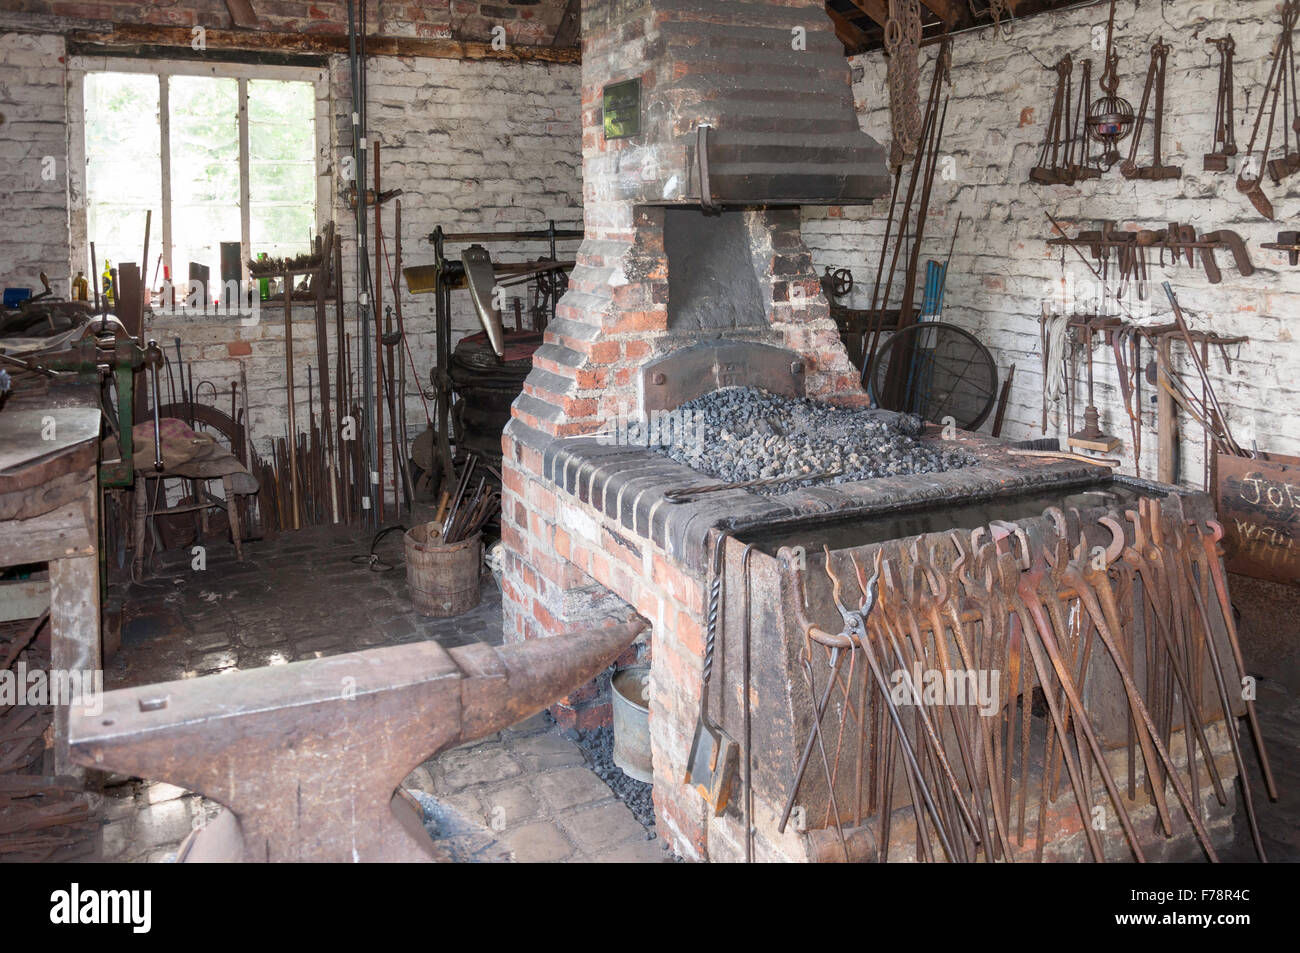 Garston Forge, Chiltern Open Air Museum, Chalfont St Giles Buckinghamshire, England, United Kingdom - Stock Image